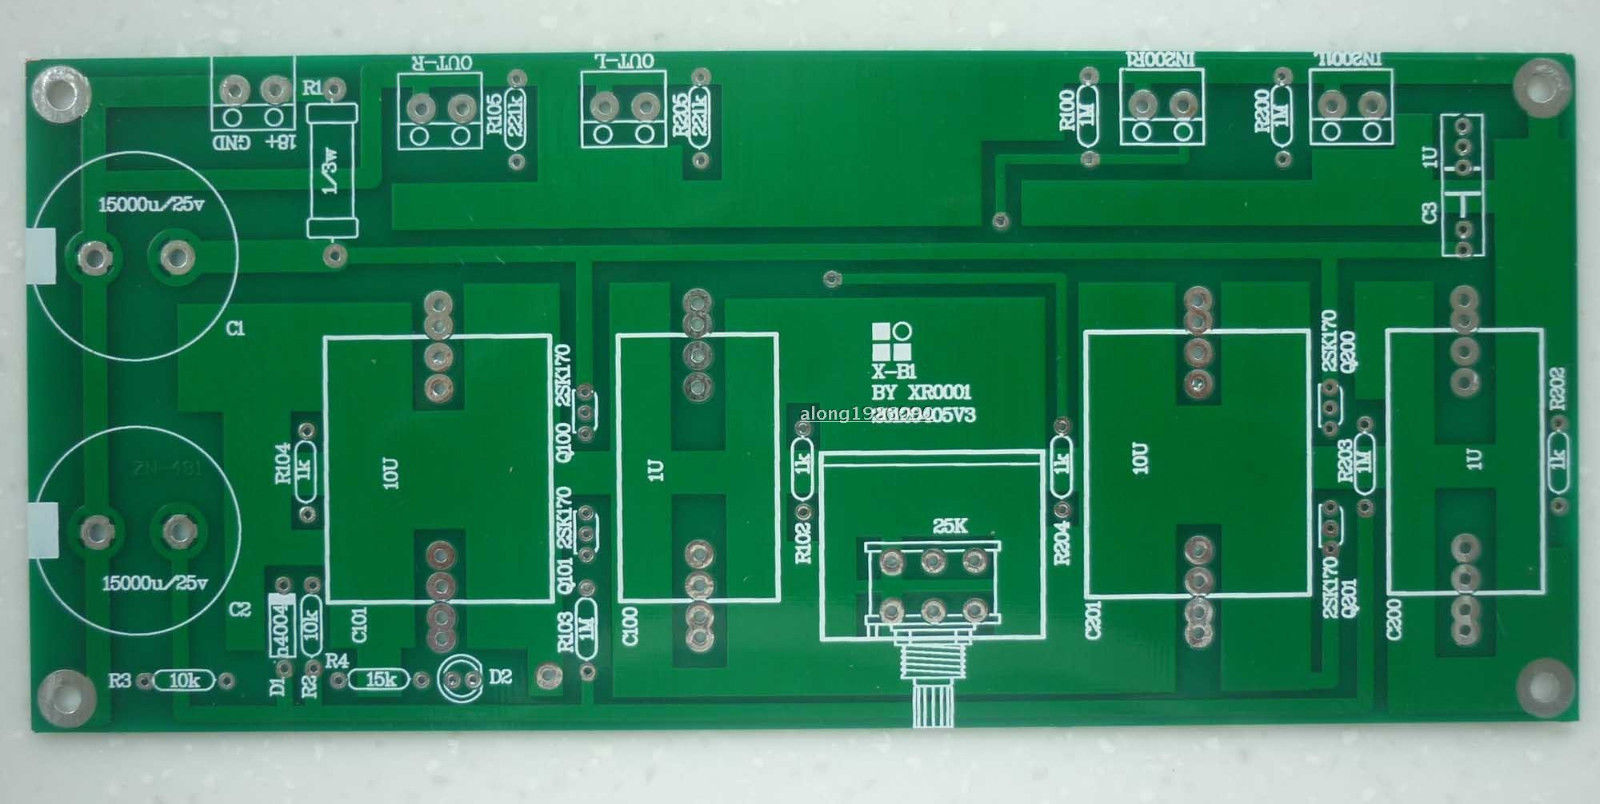 Lite Ls29 Pcb Tube Buffer Preamplifier Board Pcb Based On Musical Fidelity X10-d Pre-amp Circuit Moderate Price Accessories & Parts Audio & Video Replacement Parts